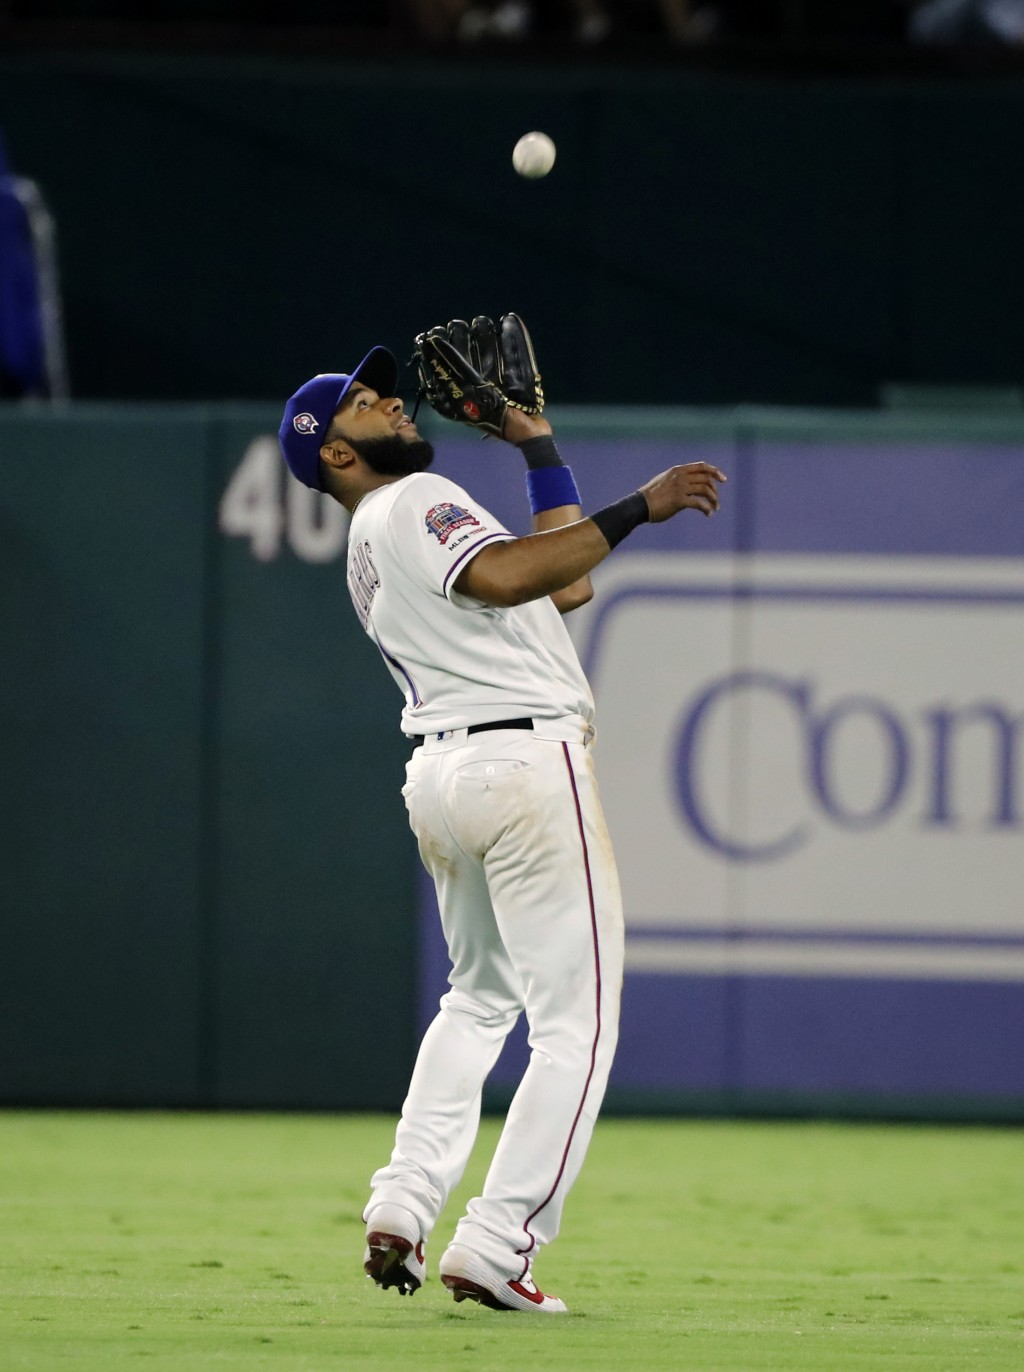 Texas Rangers' Elvis Andrus reaches up to field a fly out by Tampa Bay Rays' Joey Wendle during the fifth inning of a baseball game in Arlington, Texa...